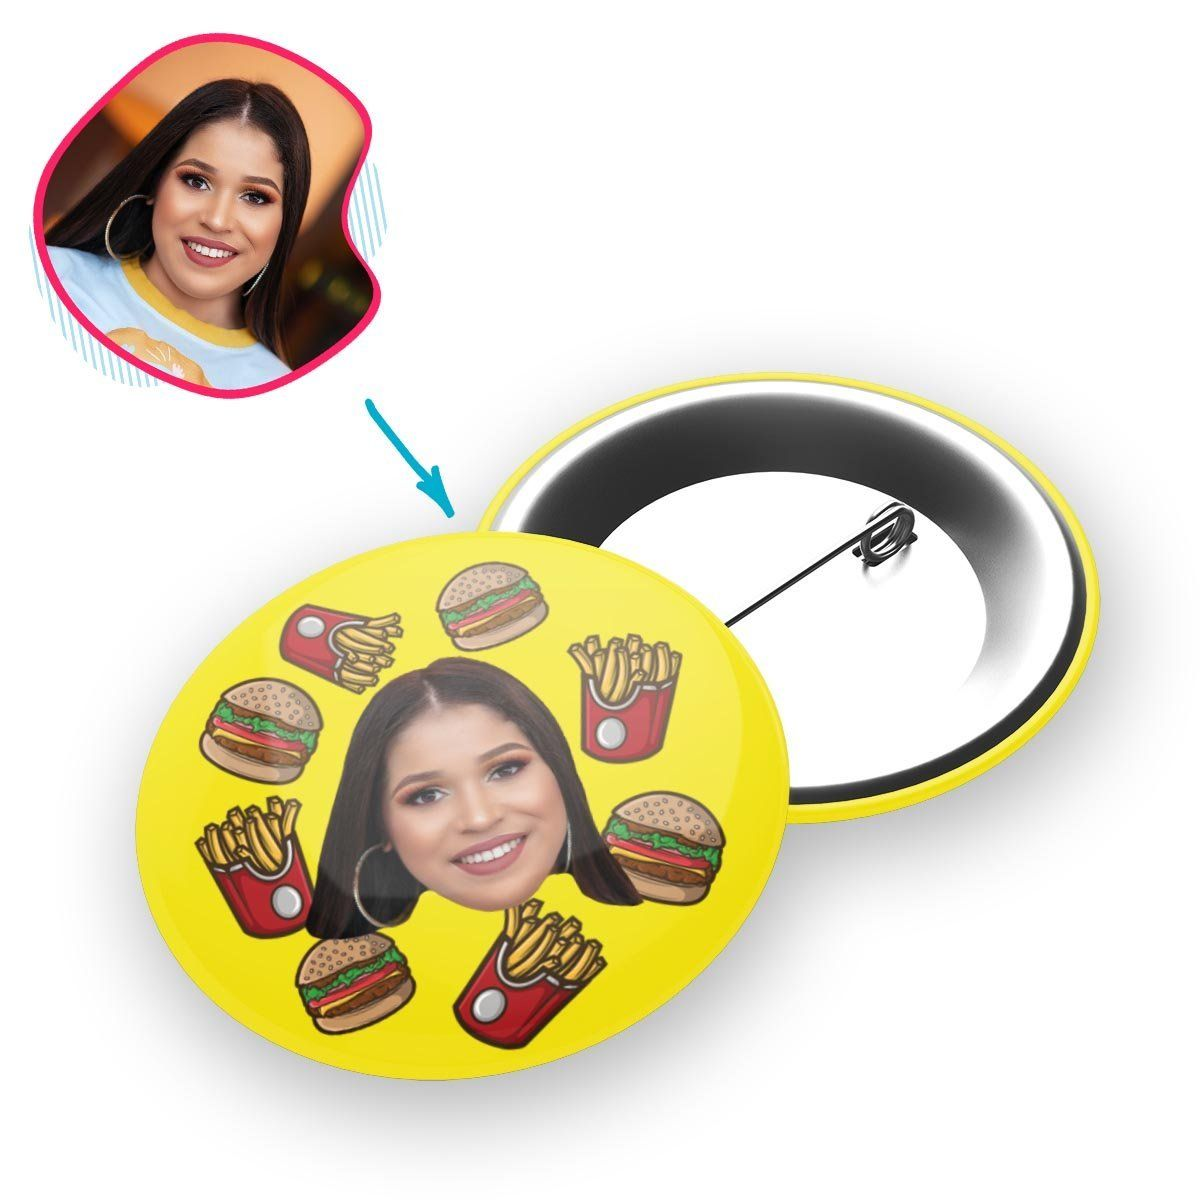 yellow Fastfood pin personalized with photo of face printed on it